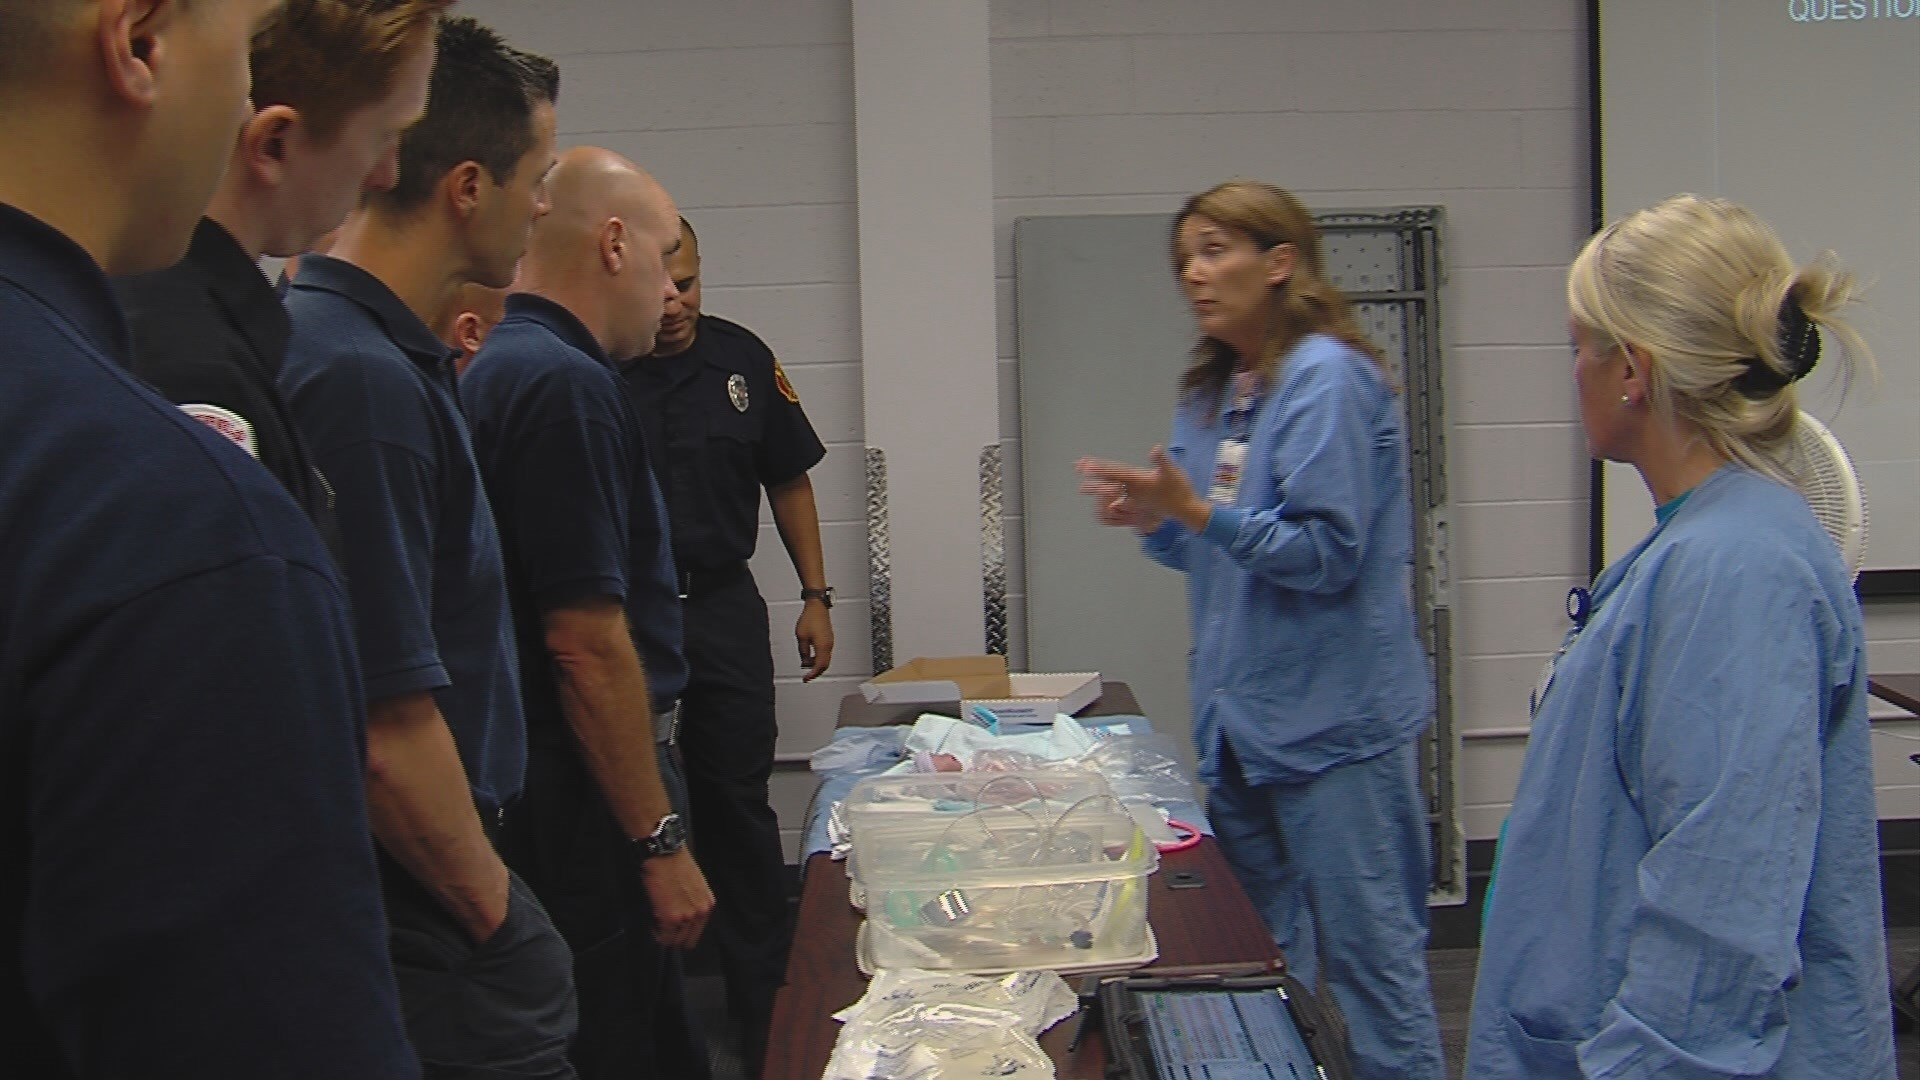 Firefighters give lesson on emergency childbirth training ...